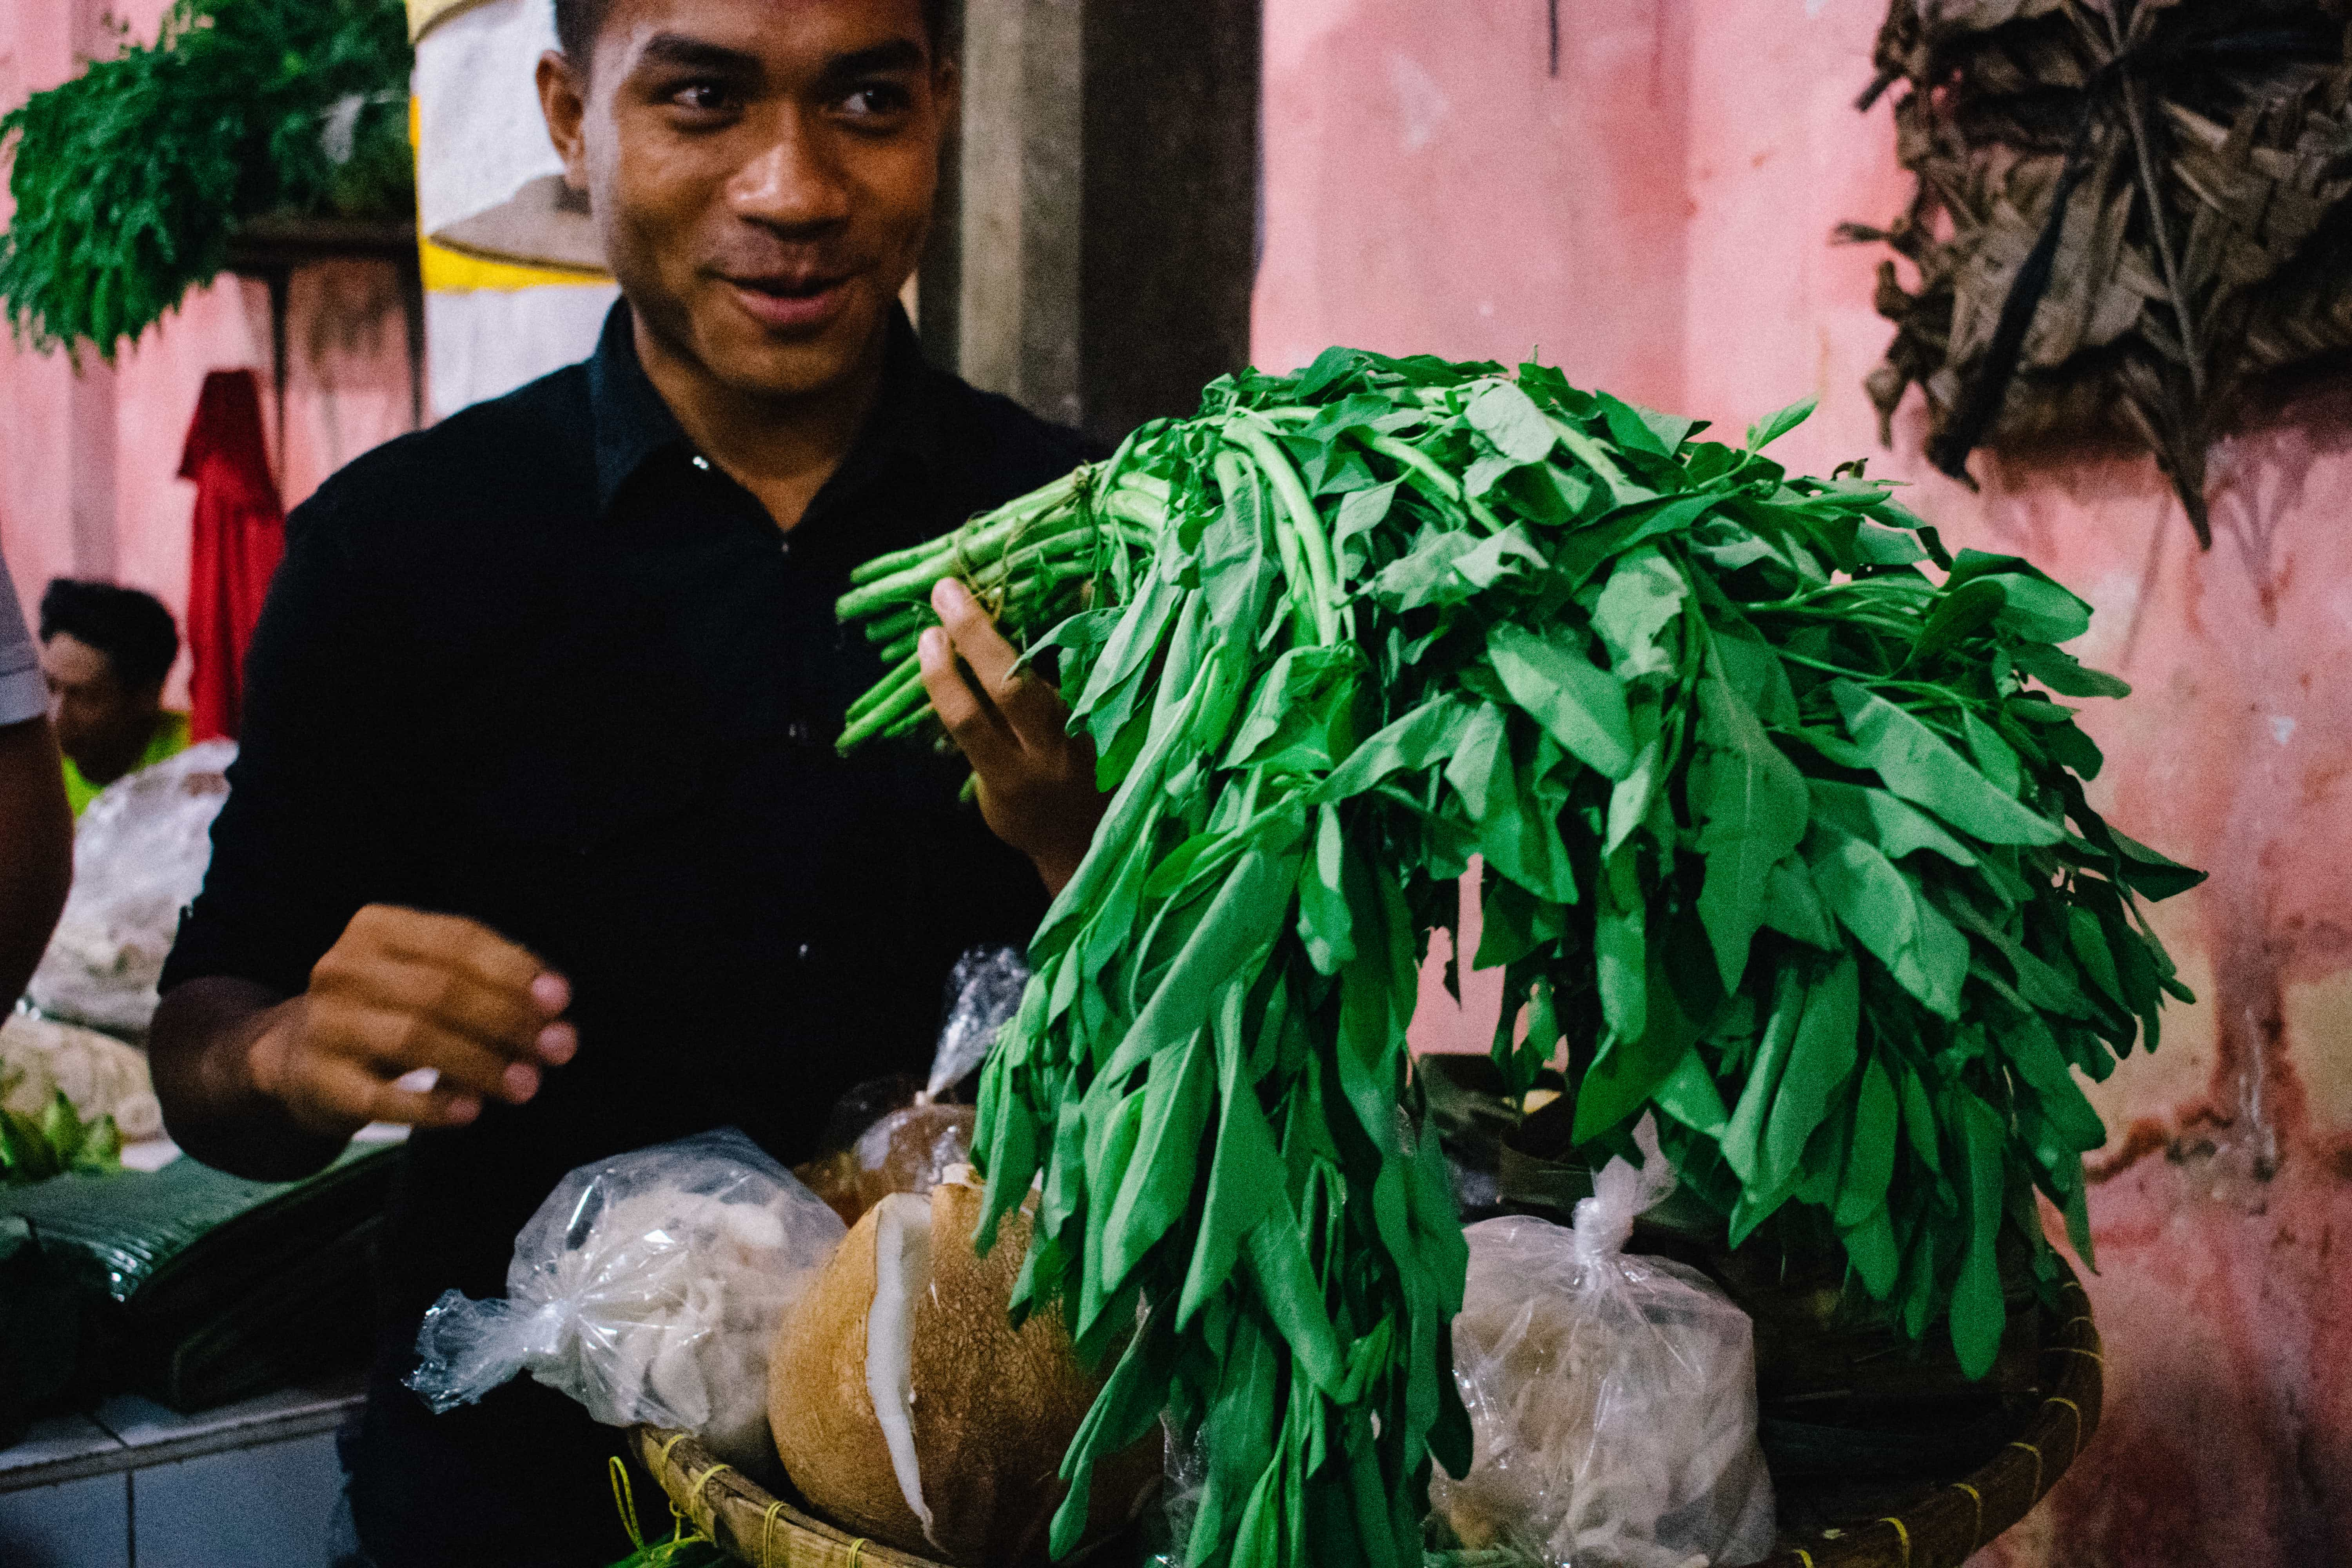 This is our local guide, Putra, who walked us around the local Kuta market and introduce us to local Balinese food ingredients.